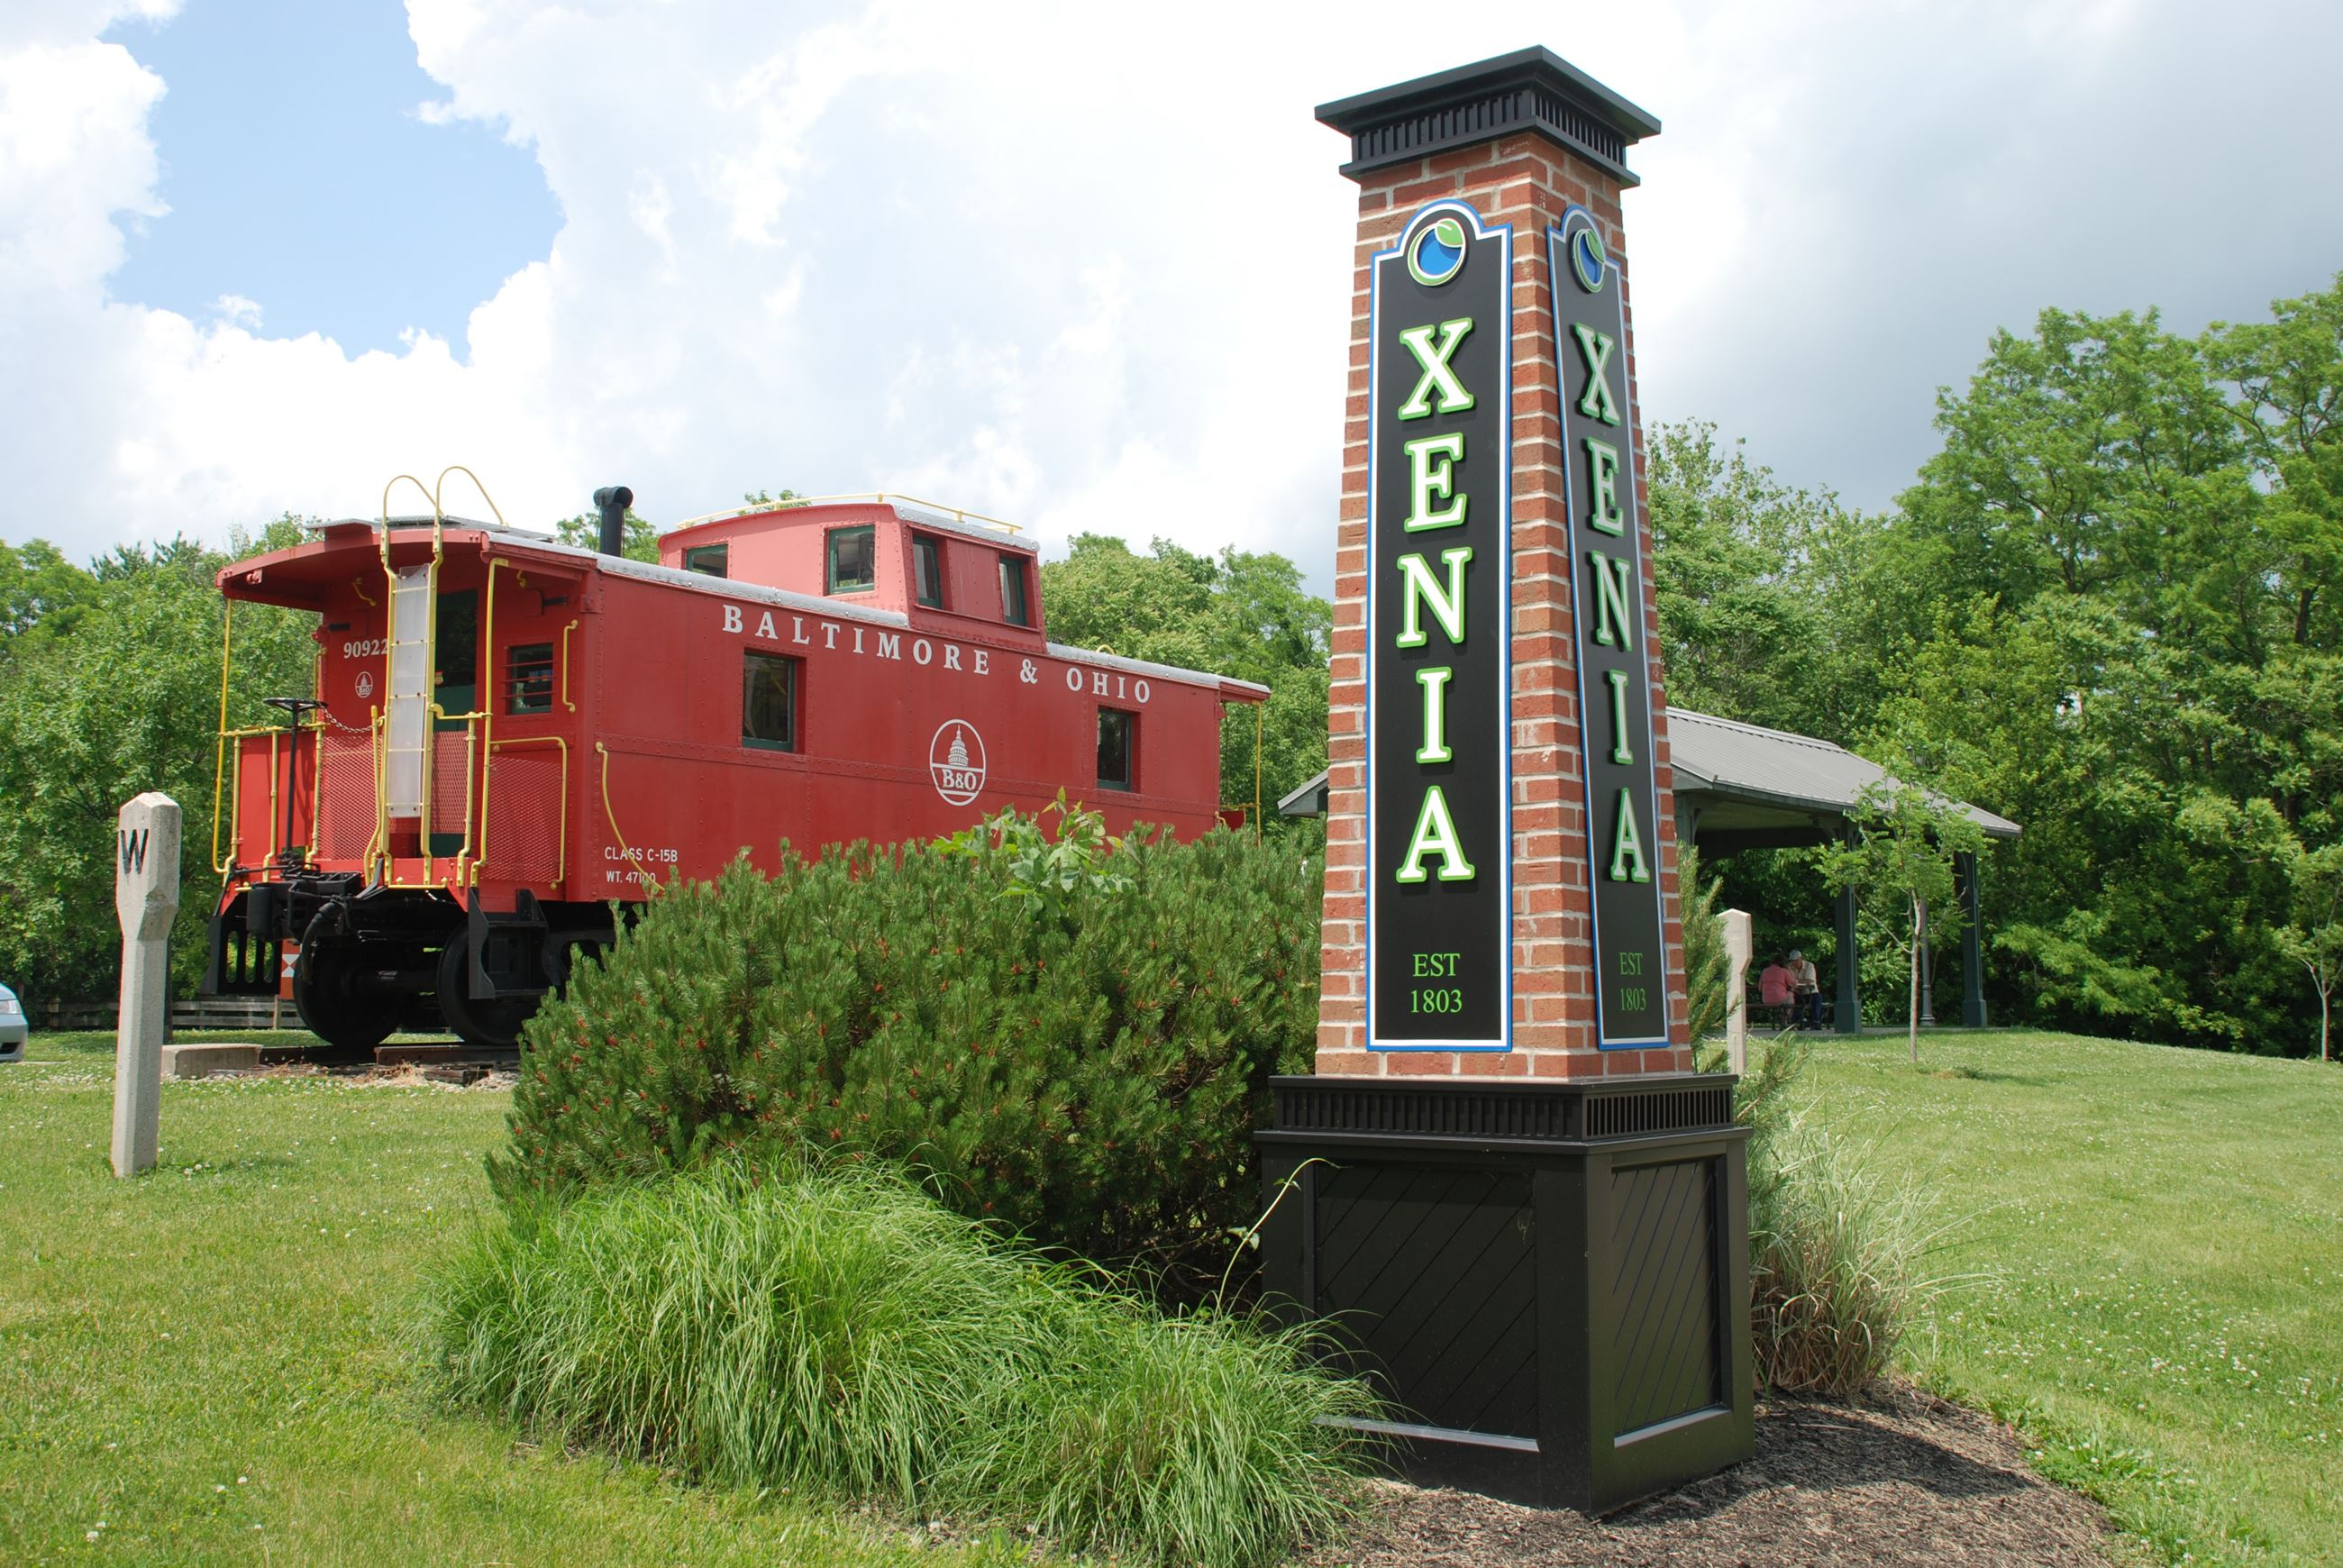 Caboose with Xenia sign